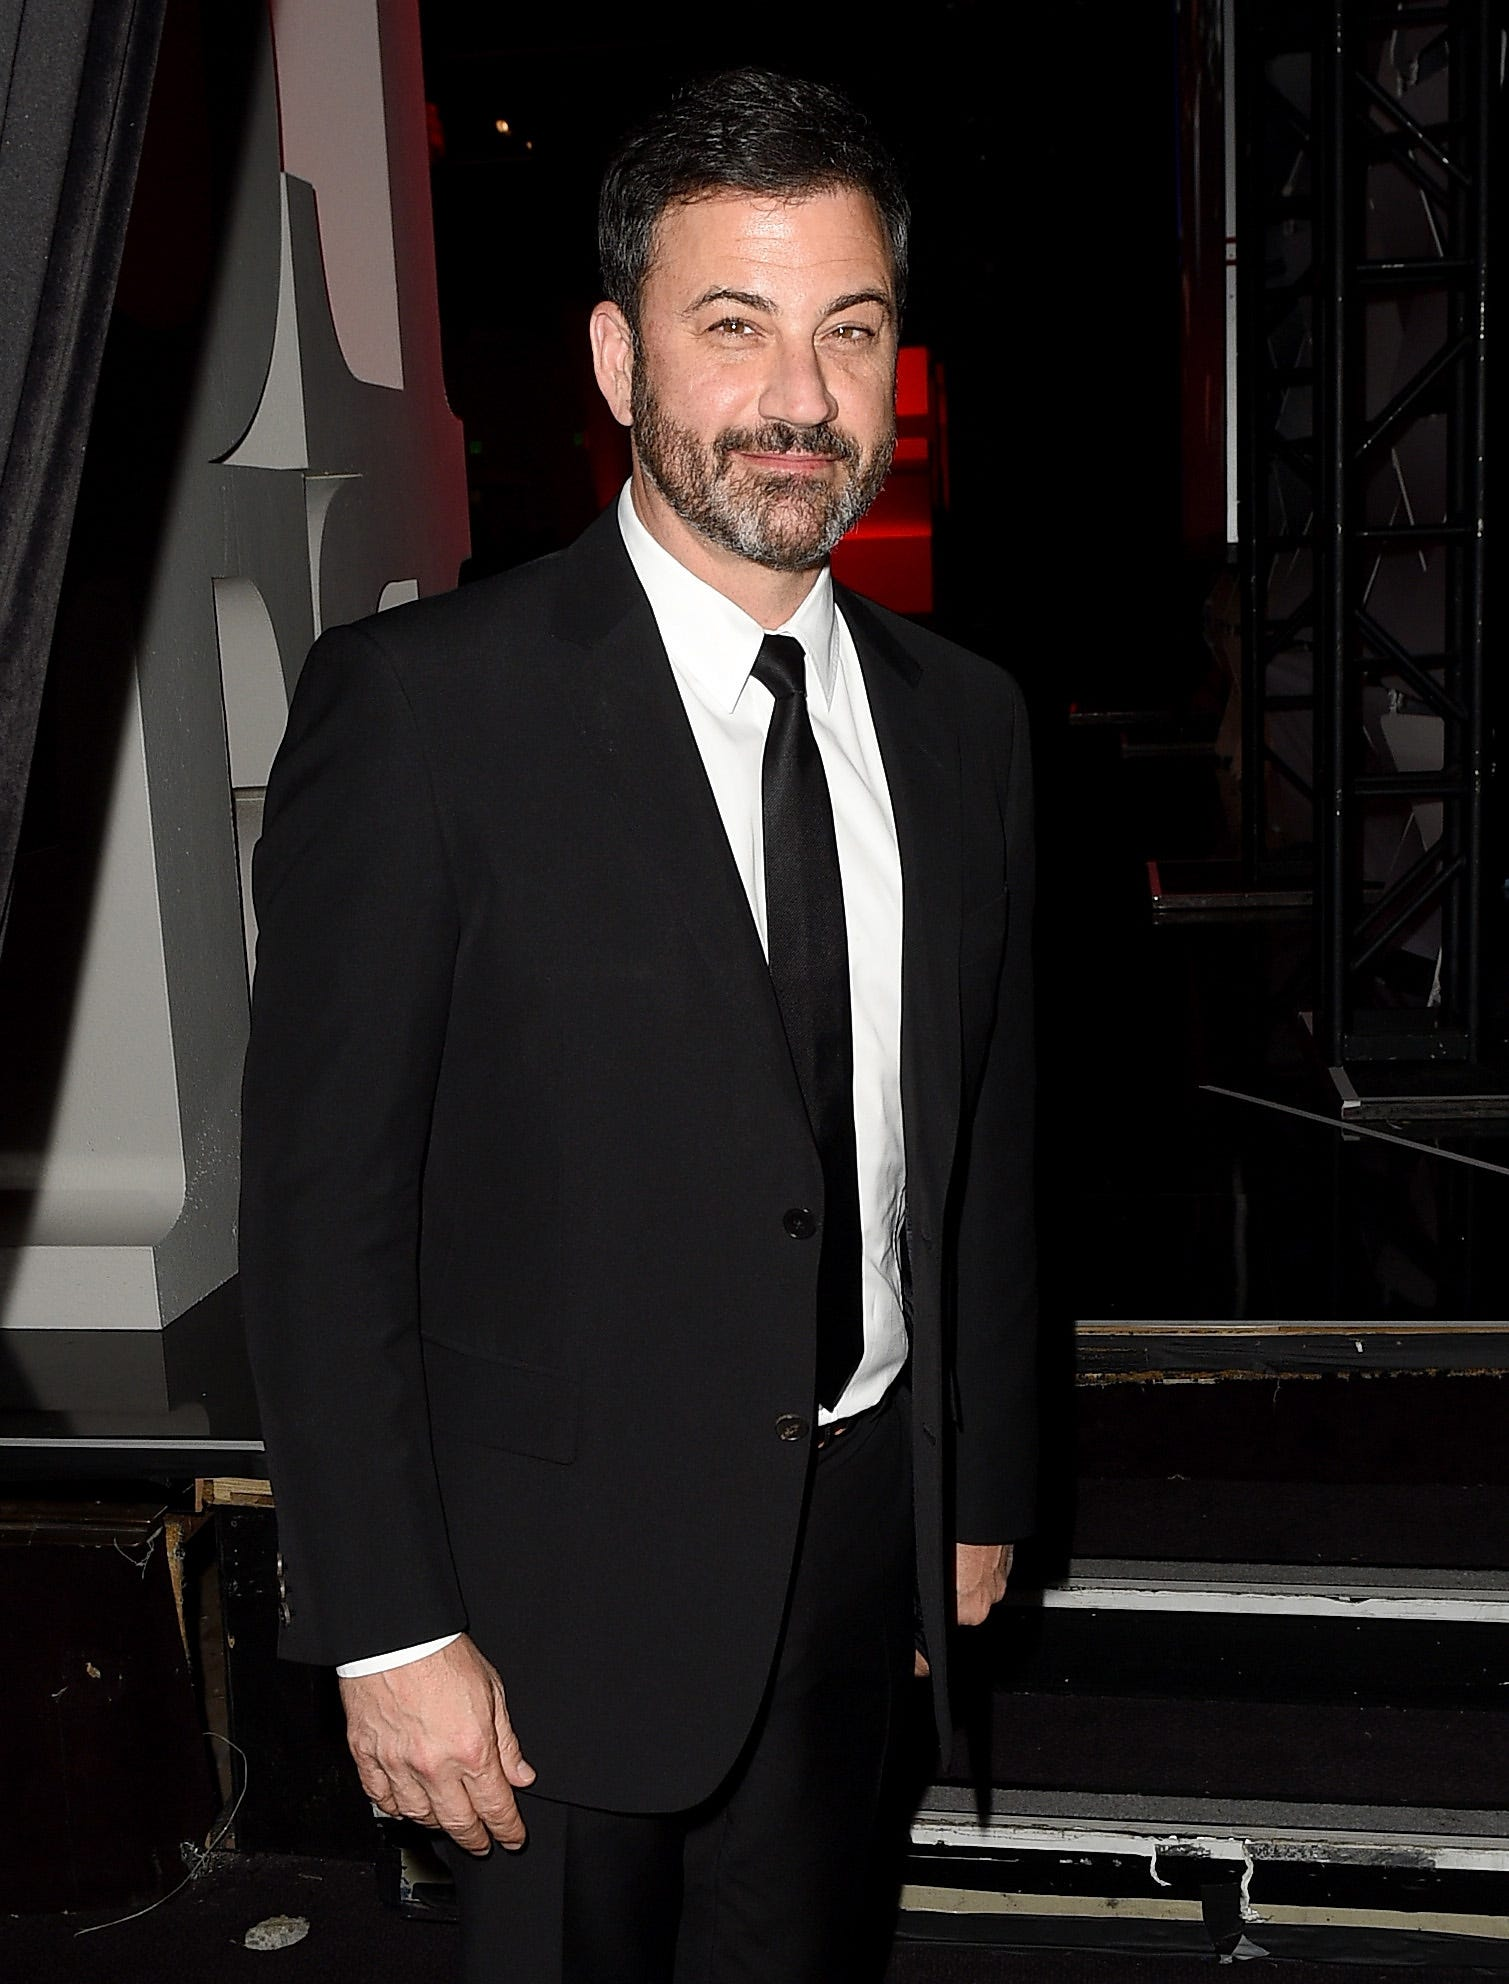 Jimmy Kimmel's baby son completes second surgery; Kimmel will take a week off